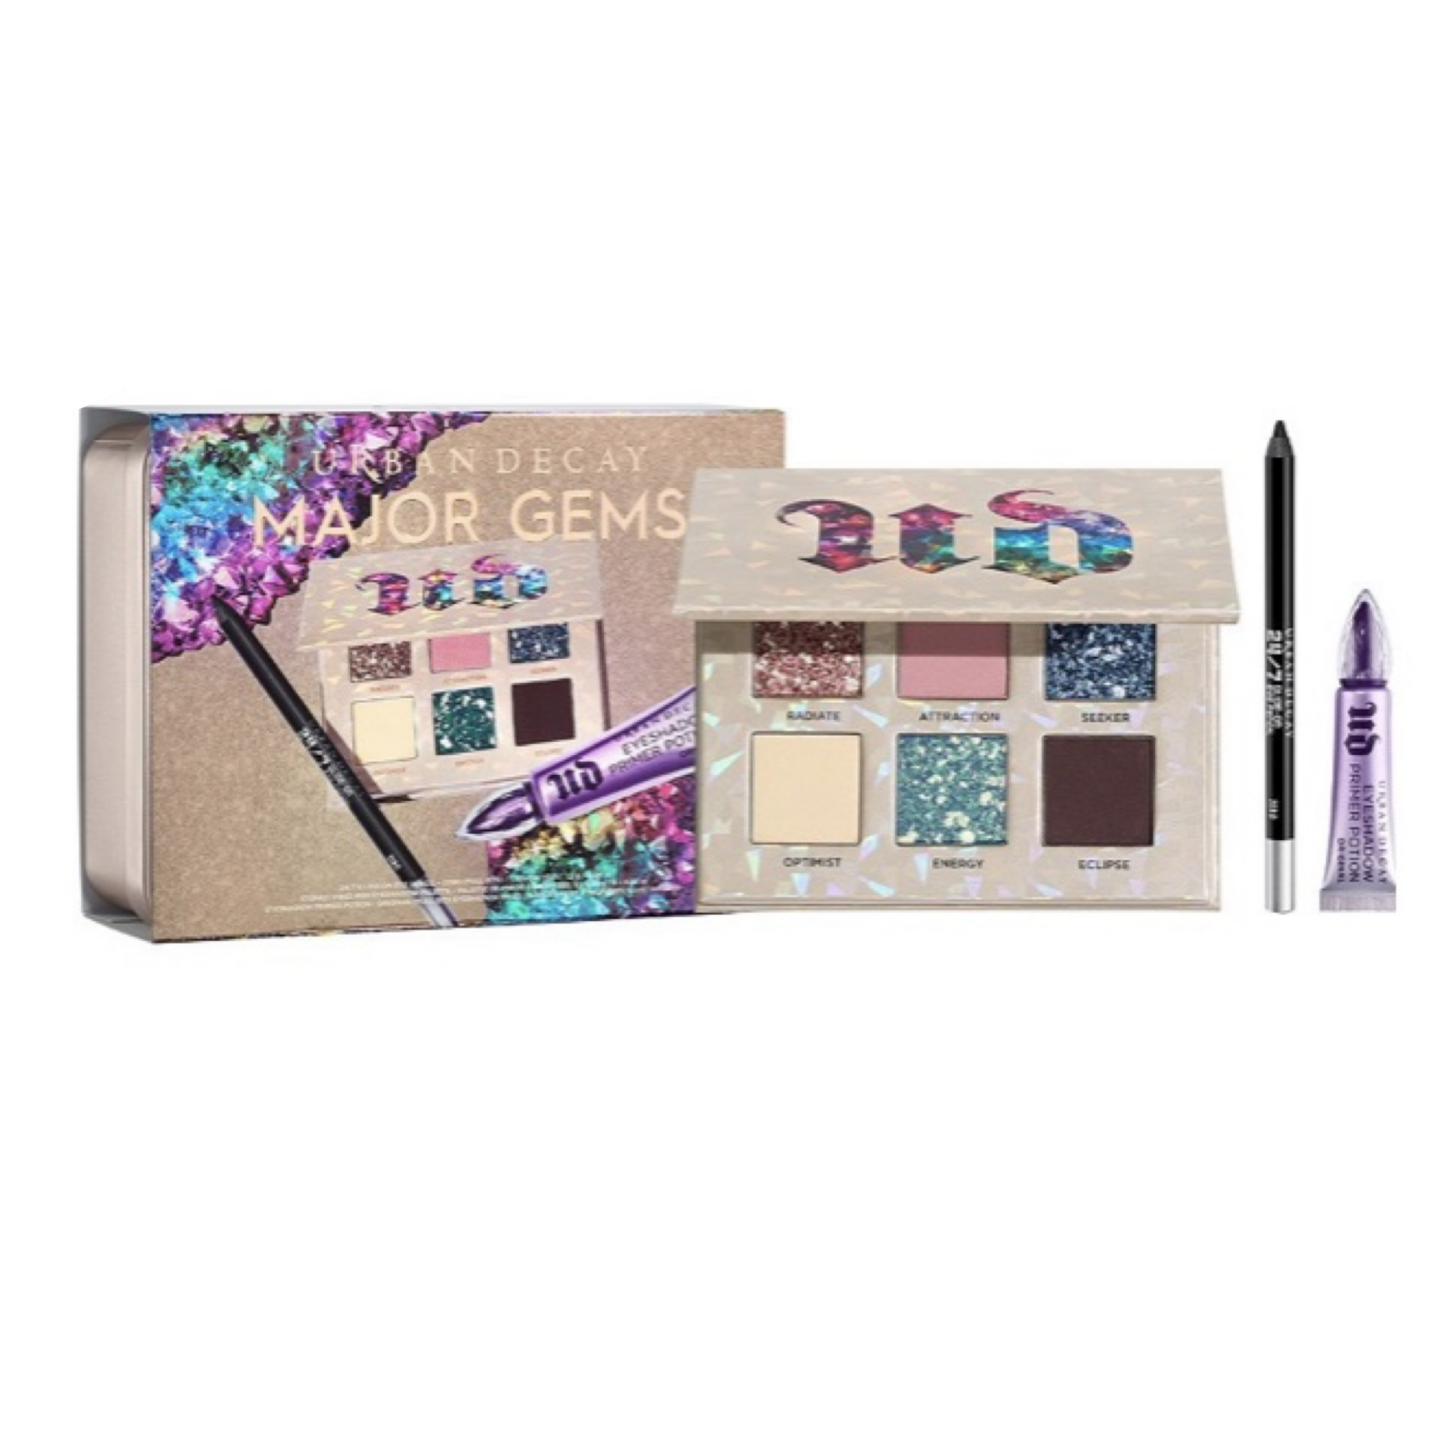 Urban Decay Stoned Vibes Major Gems Gift Set